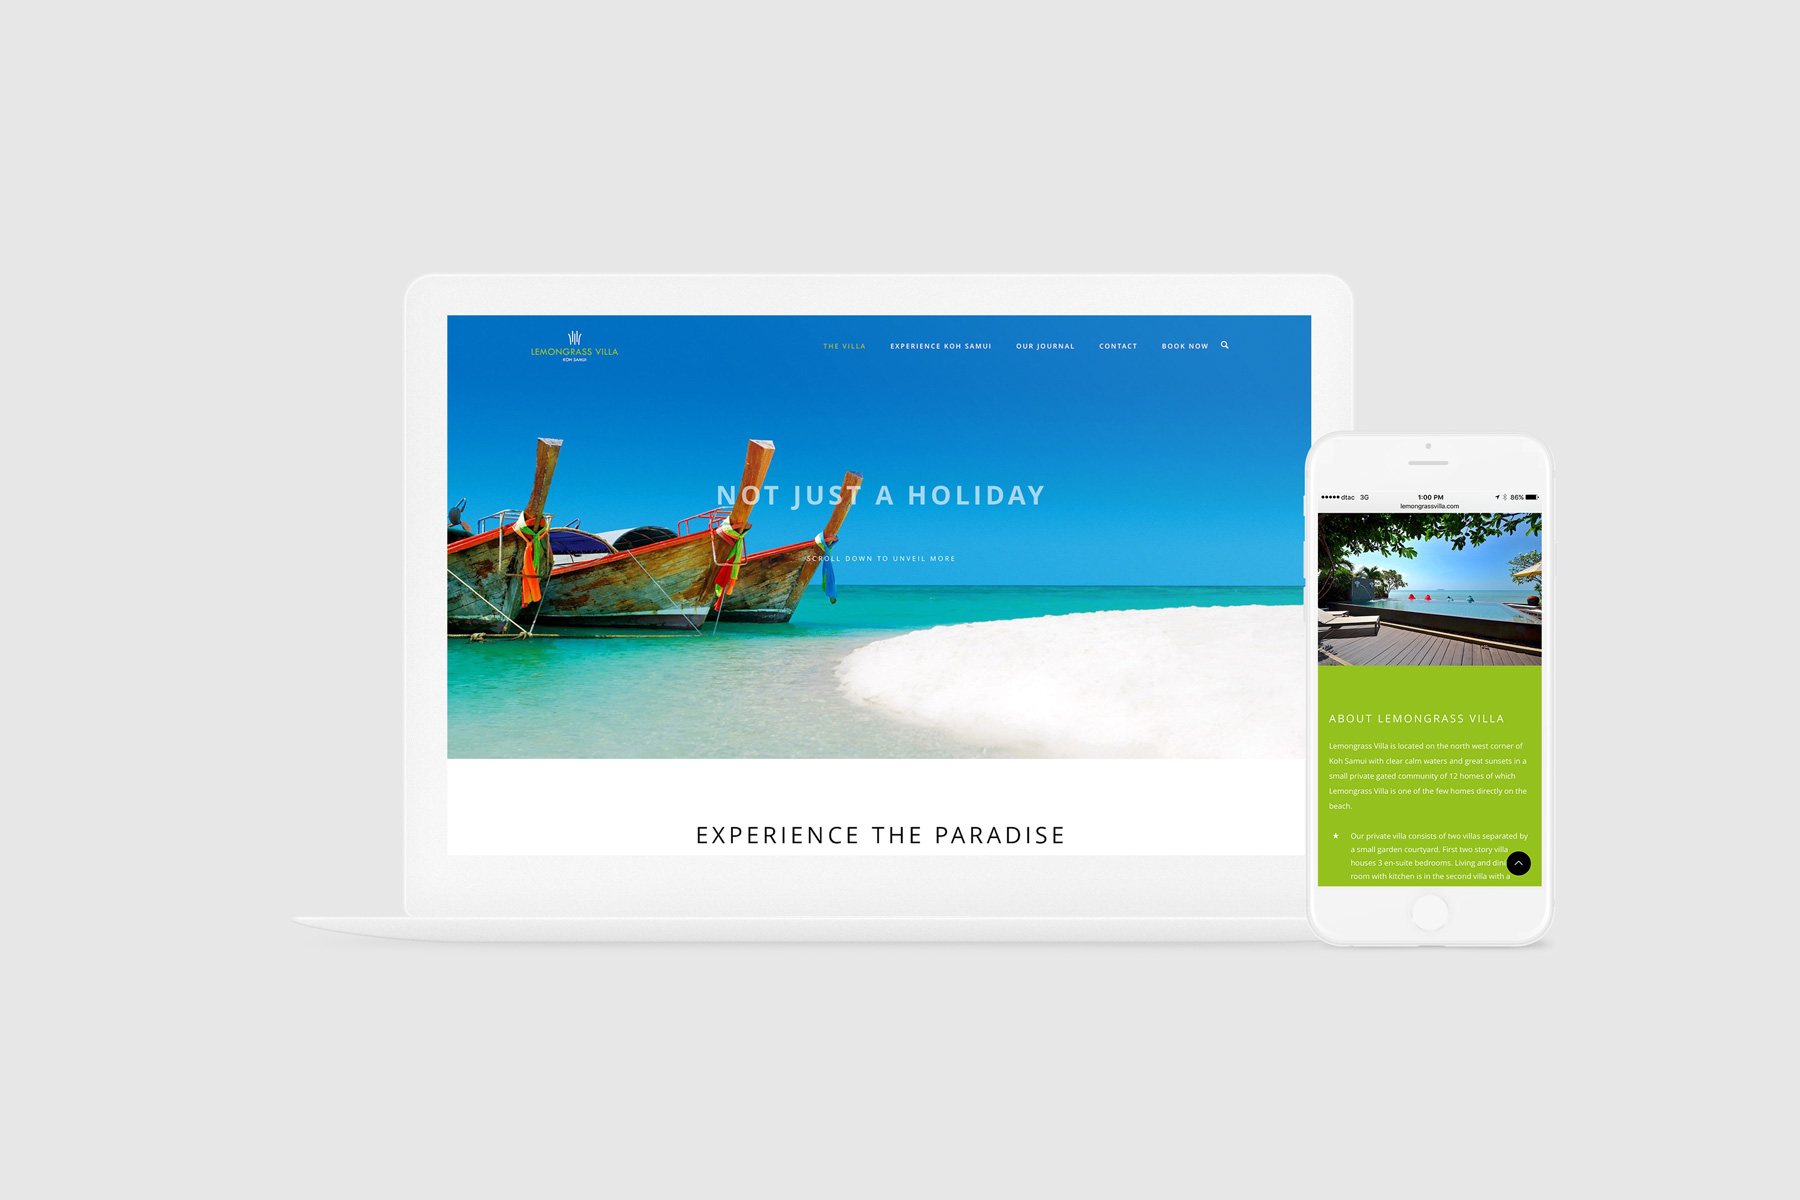 HOTEL WEBSITE WITH A BOOKING SYSTEM   I worked with the developer of Lemongrass Villa, a private vacation estate in Koh Samui, Thailand, to design and develop the foundation of the core brand identity, along with full creative direction, photography, concept development, marketing, villa amenities production and brand/customer experience, in addition to designing the website and a social media presence.   www.lemongrassvilla.com